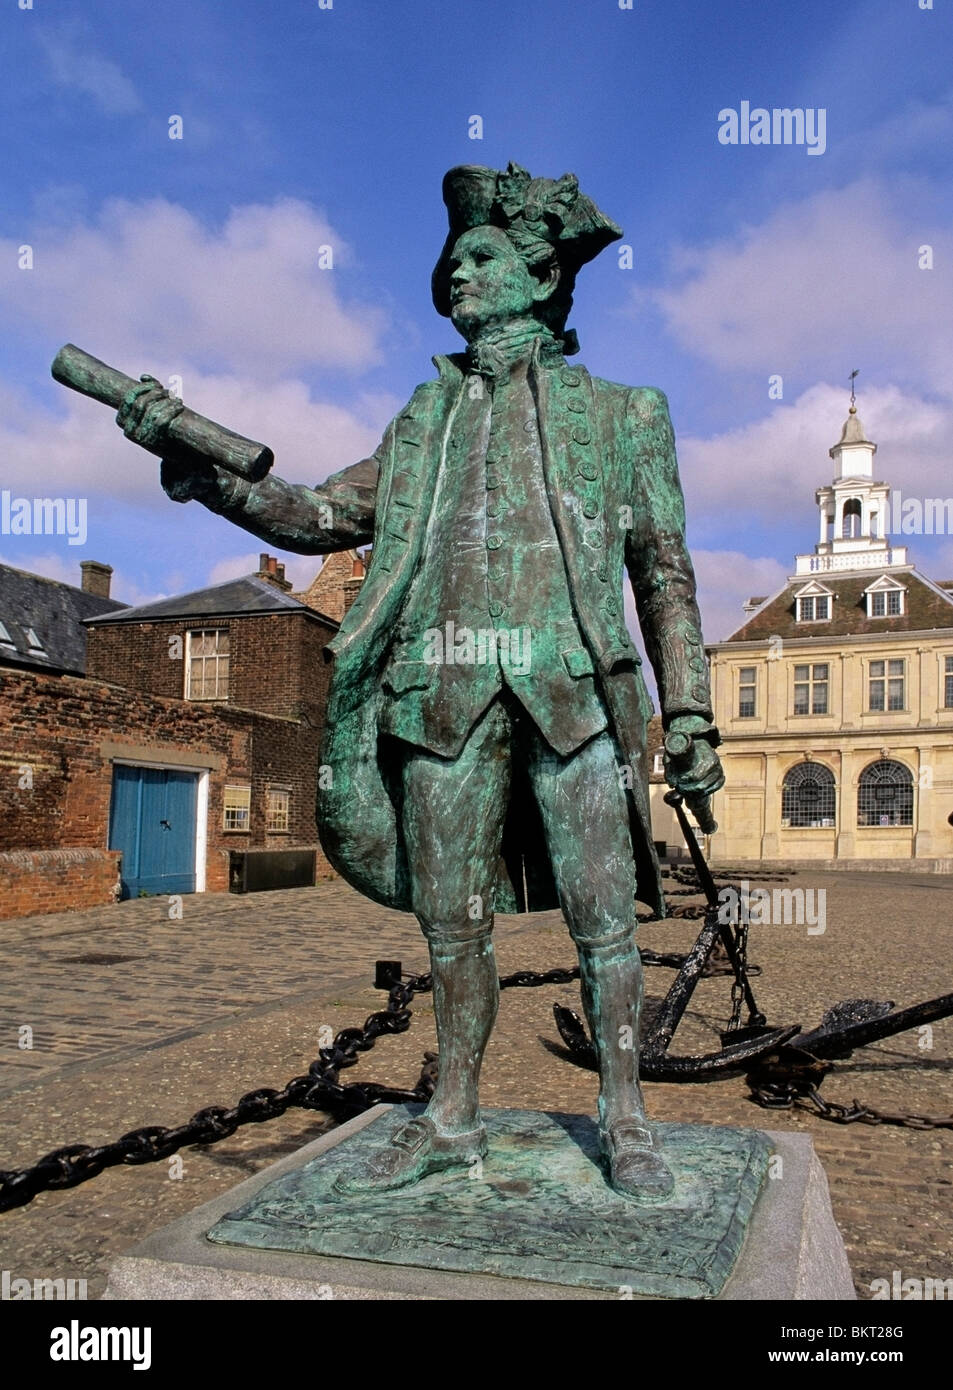 Statue of Captain George Vancouver at kings Lynn - Stock Image